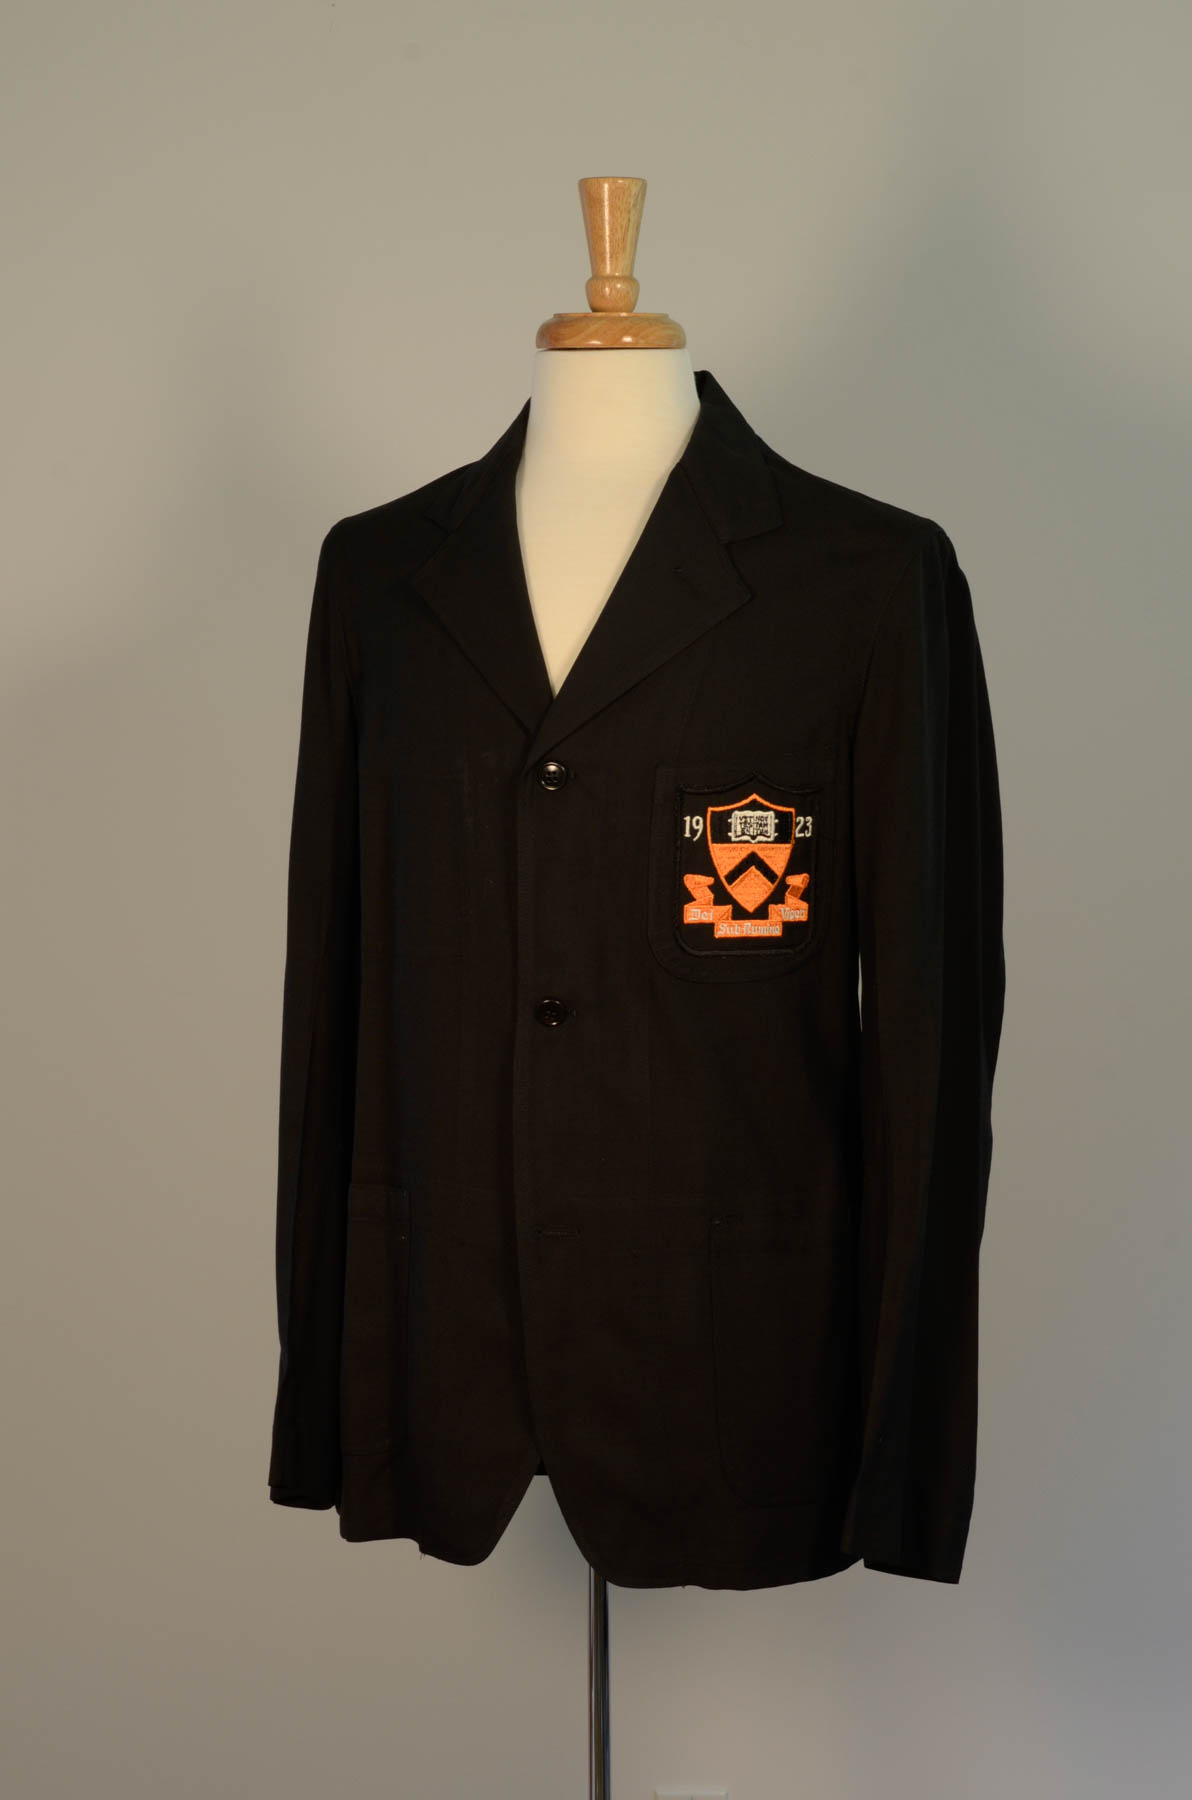 Reunion Jacket 1923 Variation I Front